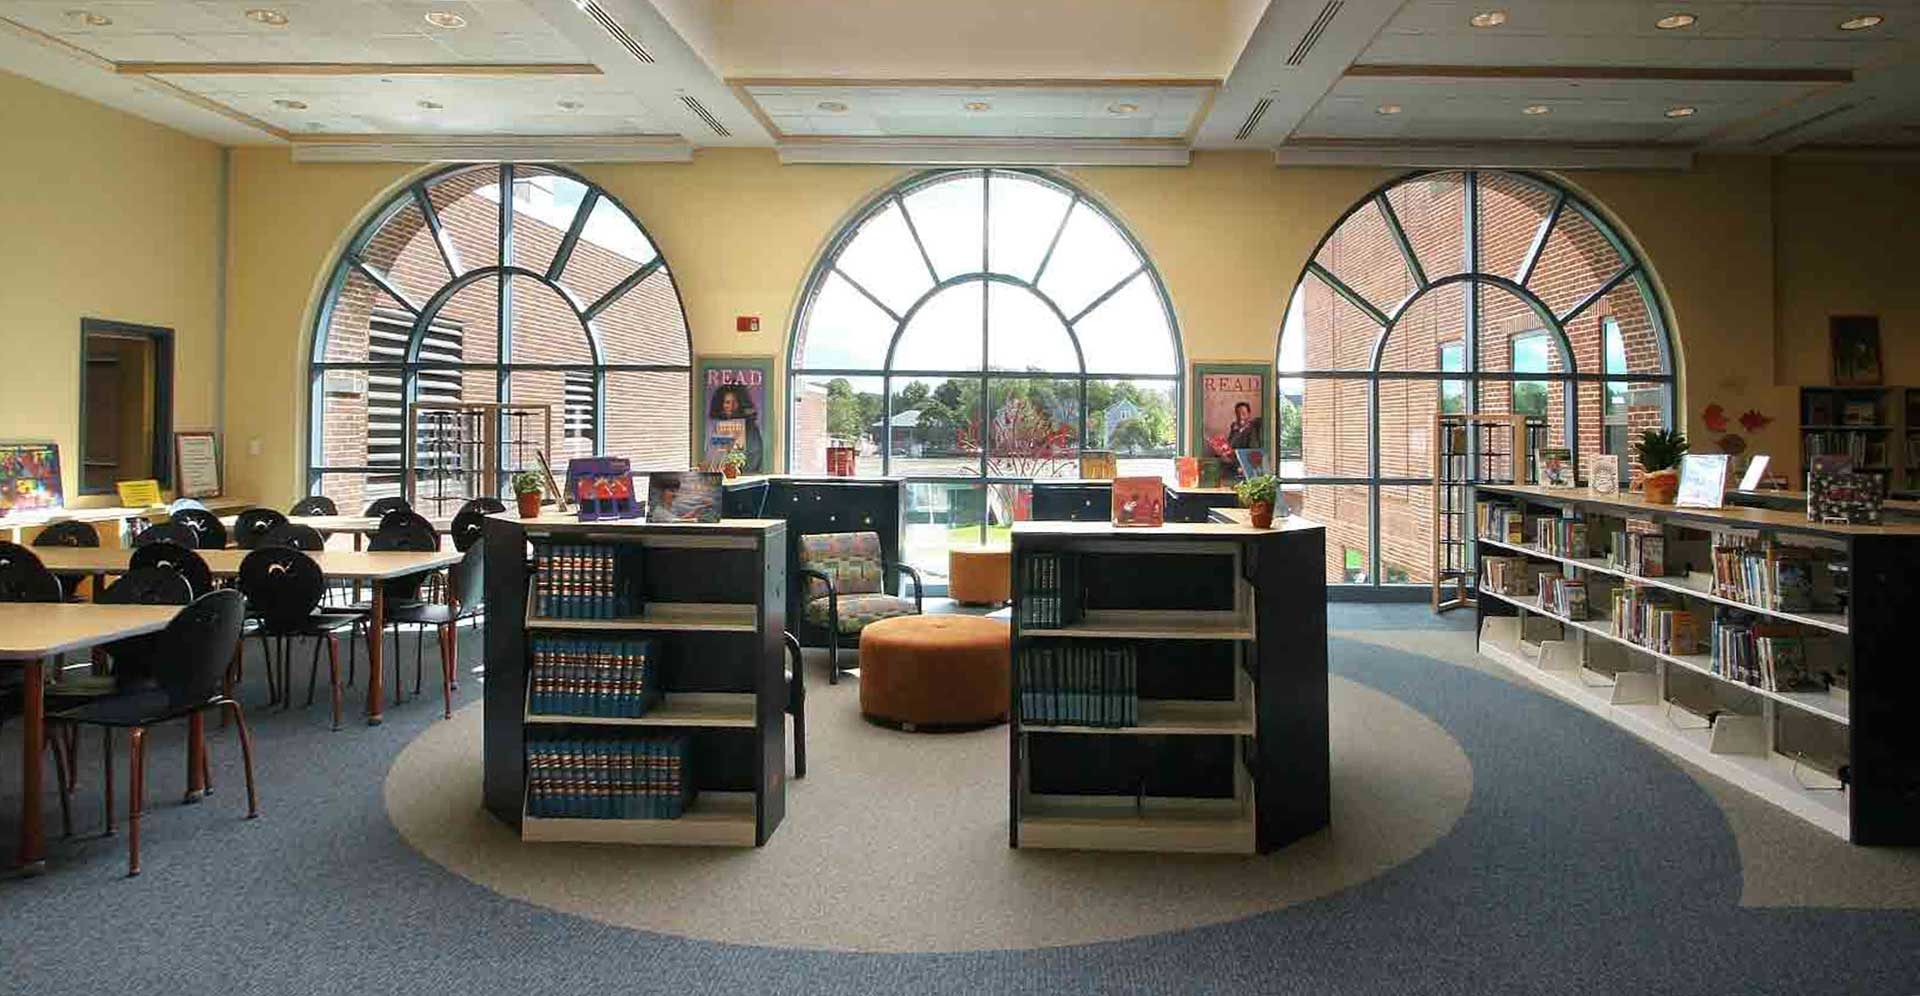 CLINTON_LIBRARY_MAIN_READING_AREA_CROPPED-AND-FIXED.jpg